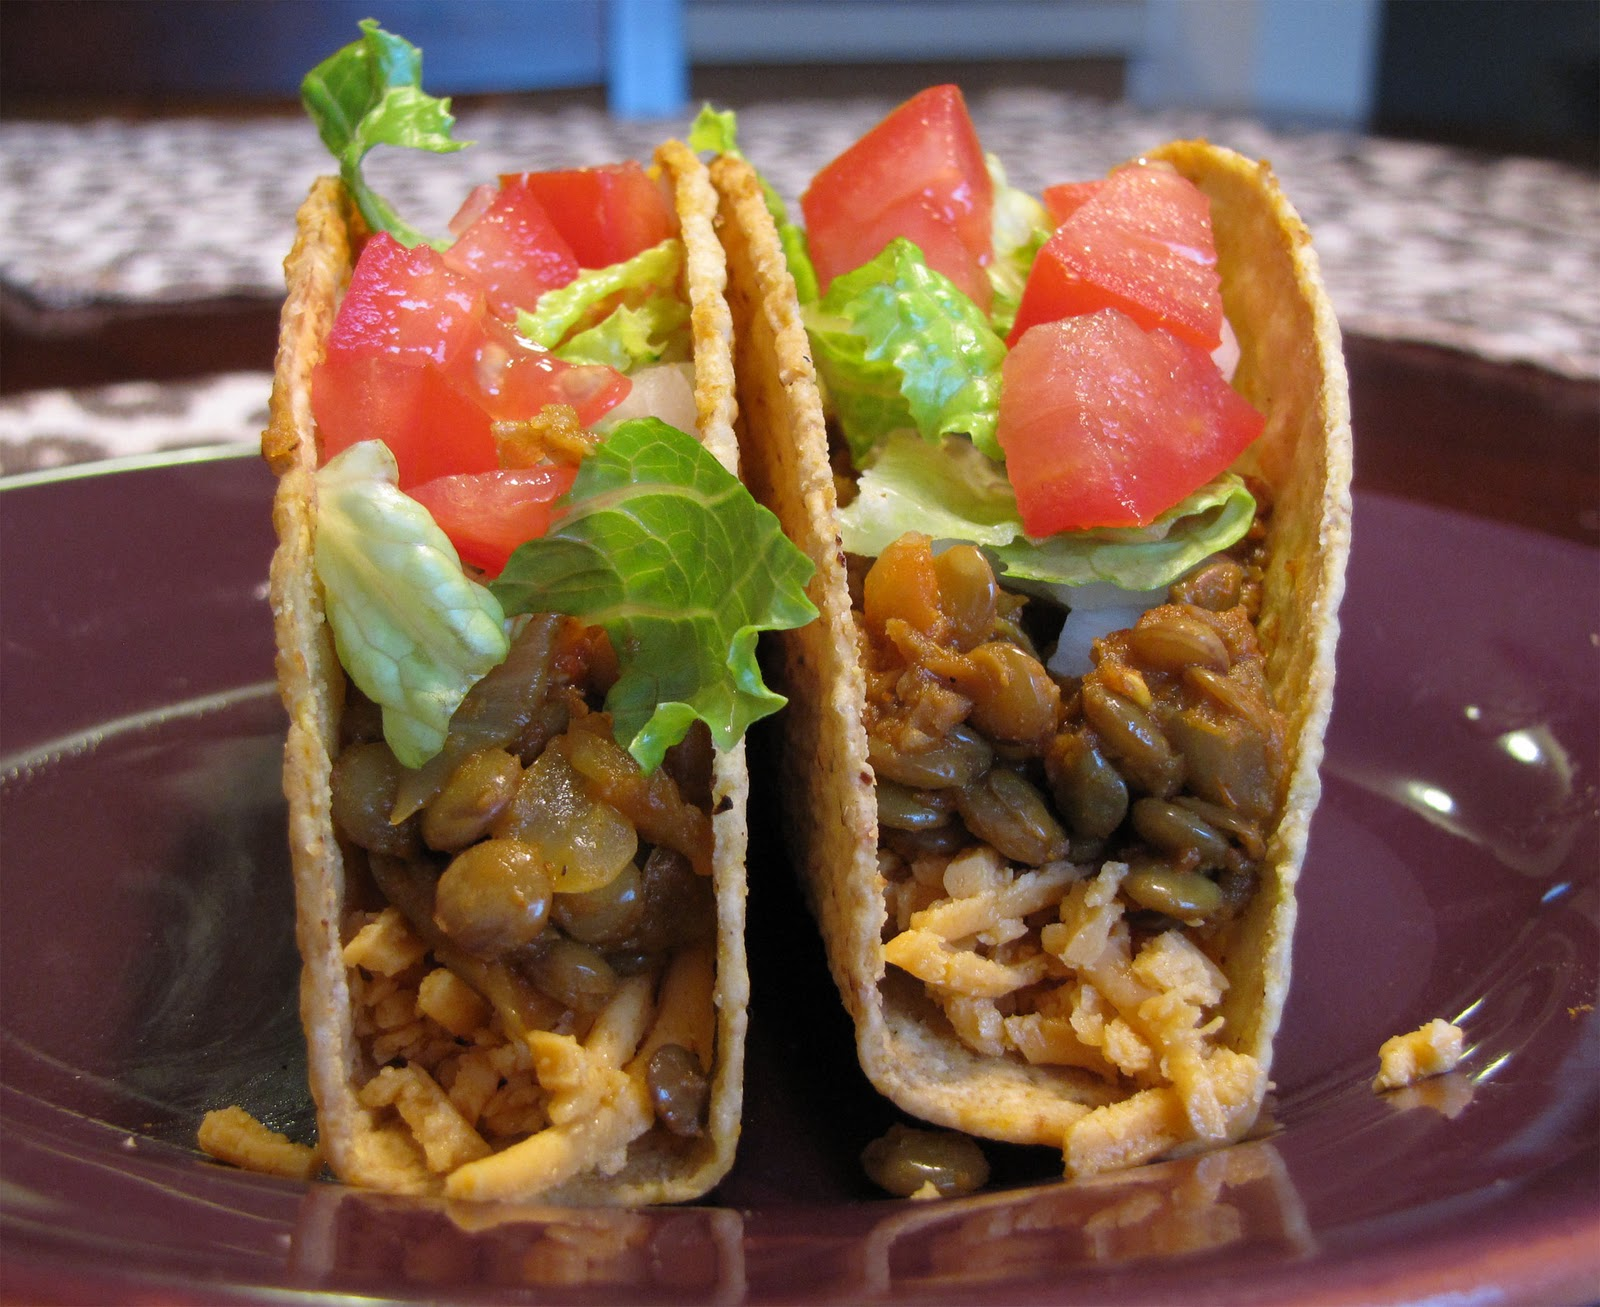 The Snarky Chickpea: Spicy Lentil Tacos